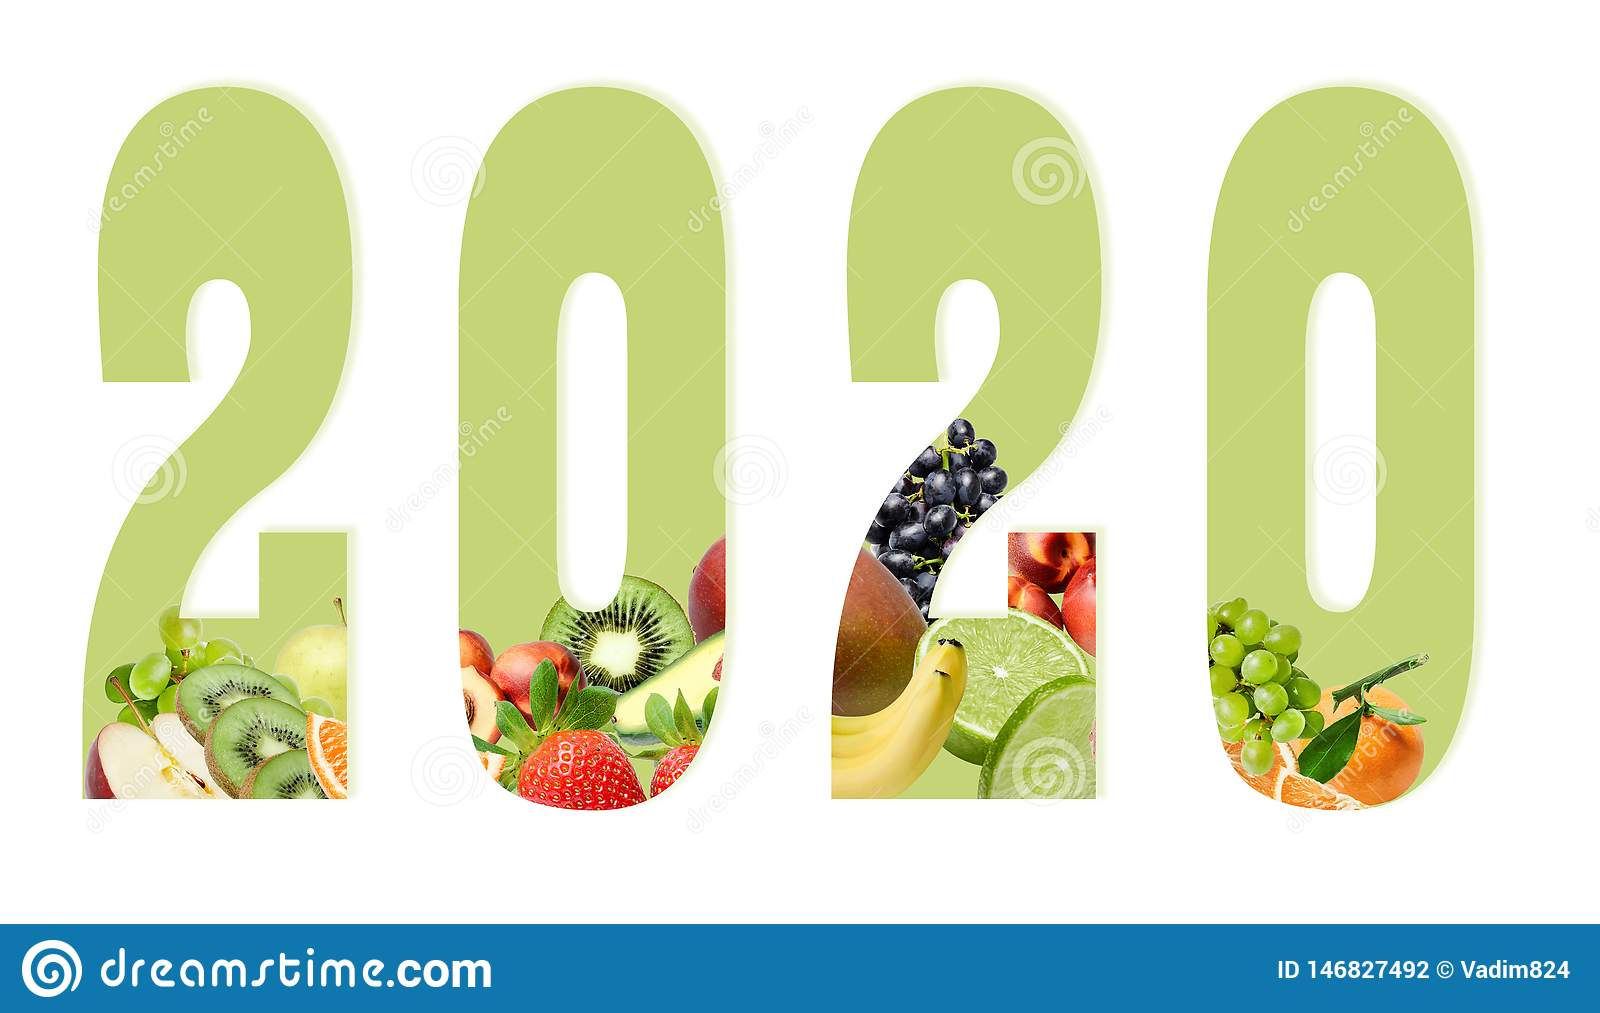 Figures of the new year 2020 on a white background decorated with fruit composition below. Design element for print or web